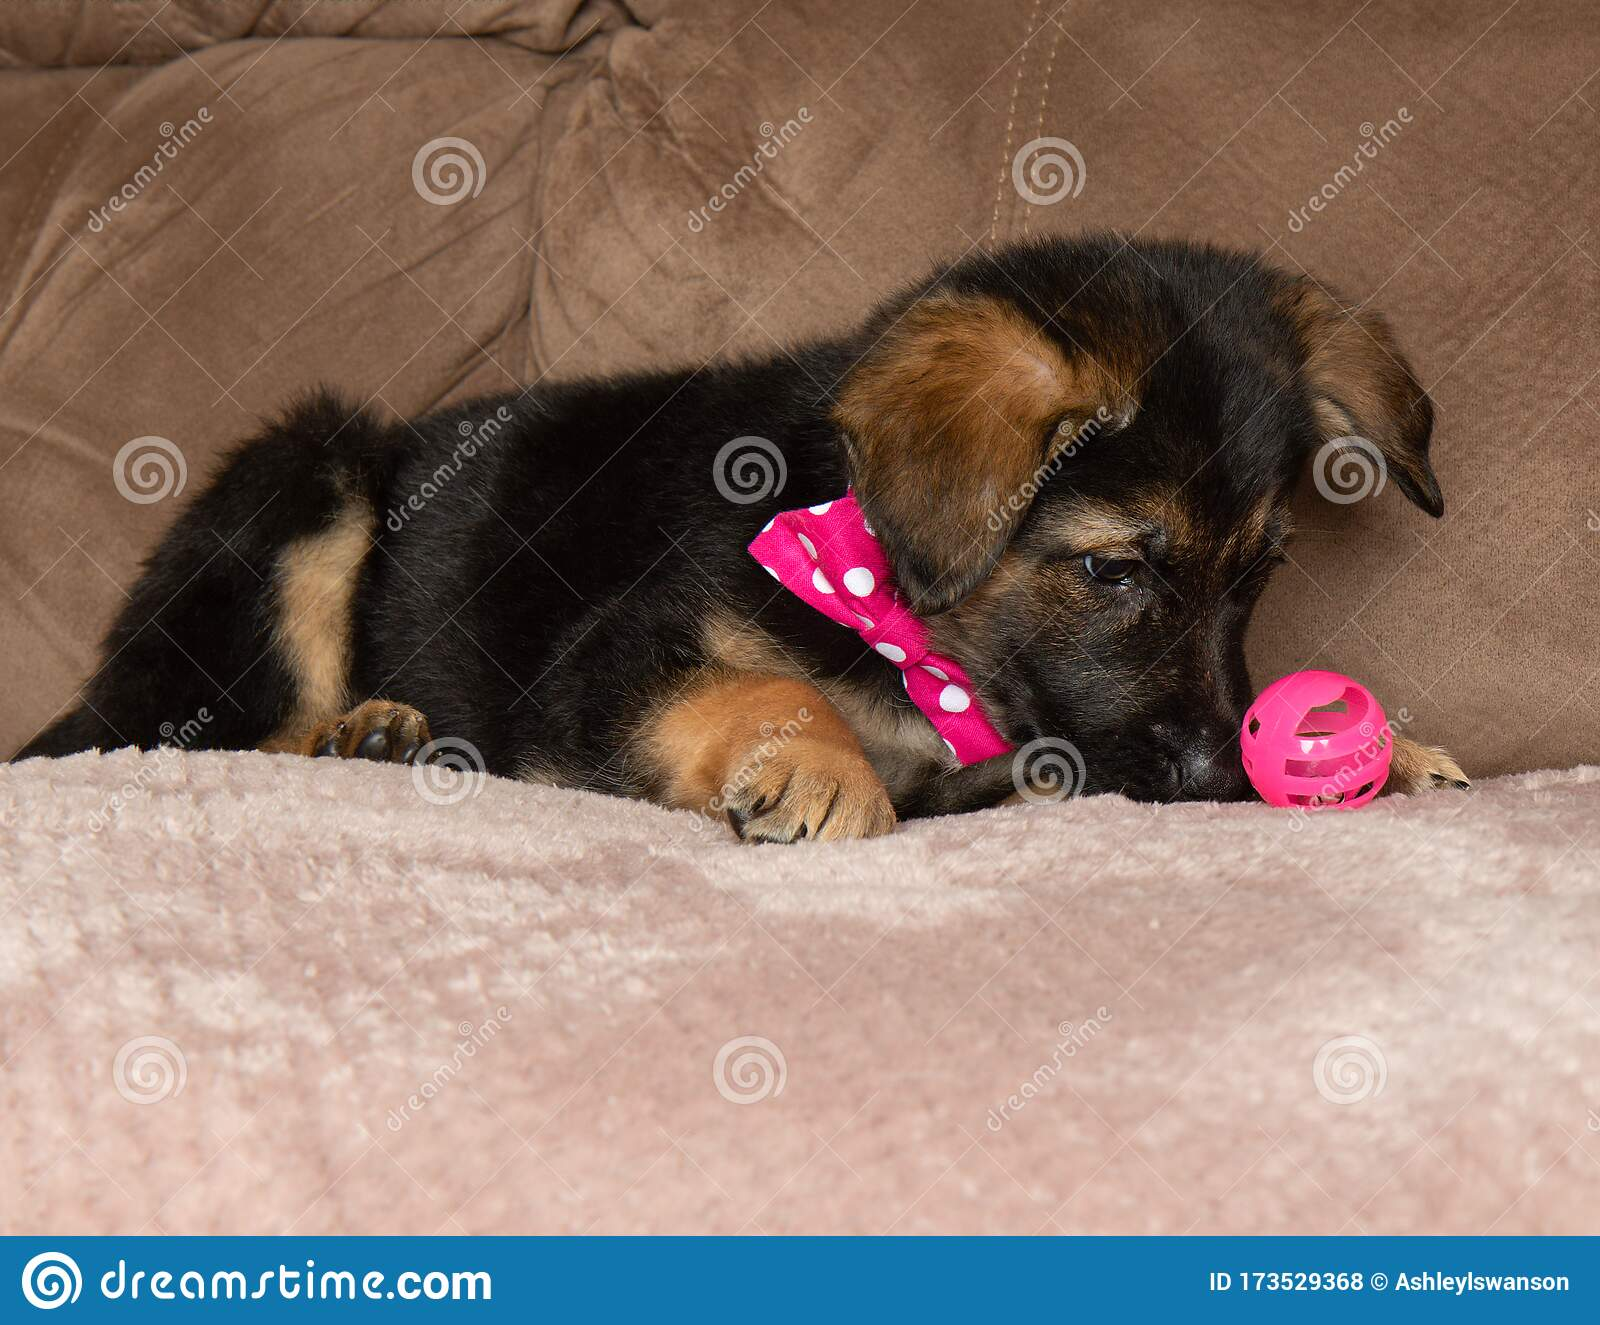 249 Happy German Shepherd Puppy Mix Photos Free Royalty Free Stock Photos From Dreamstime